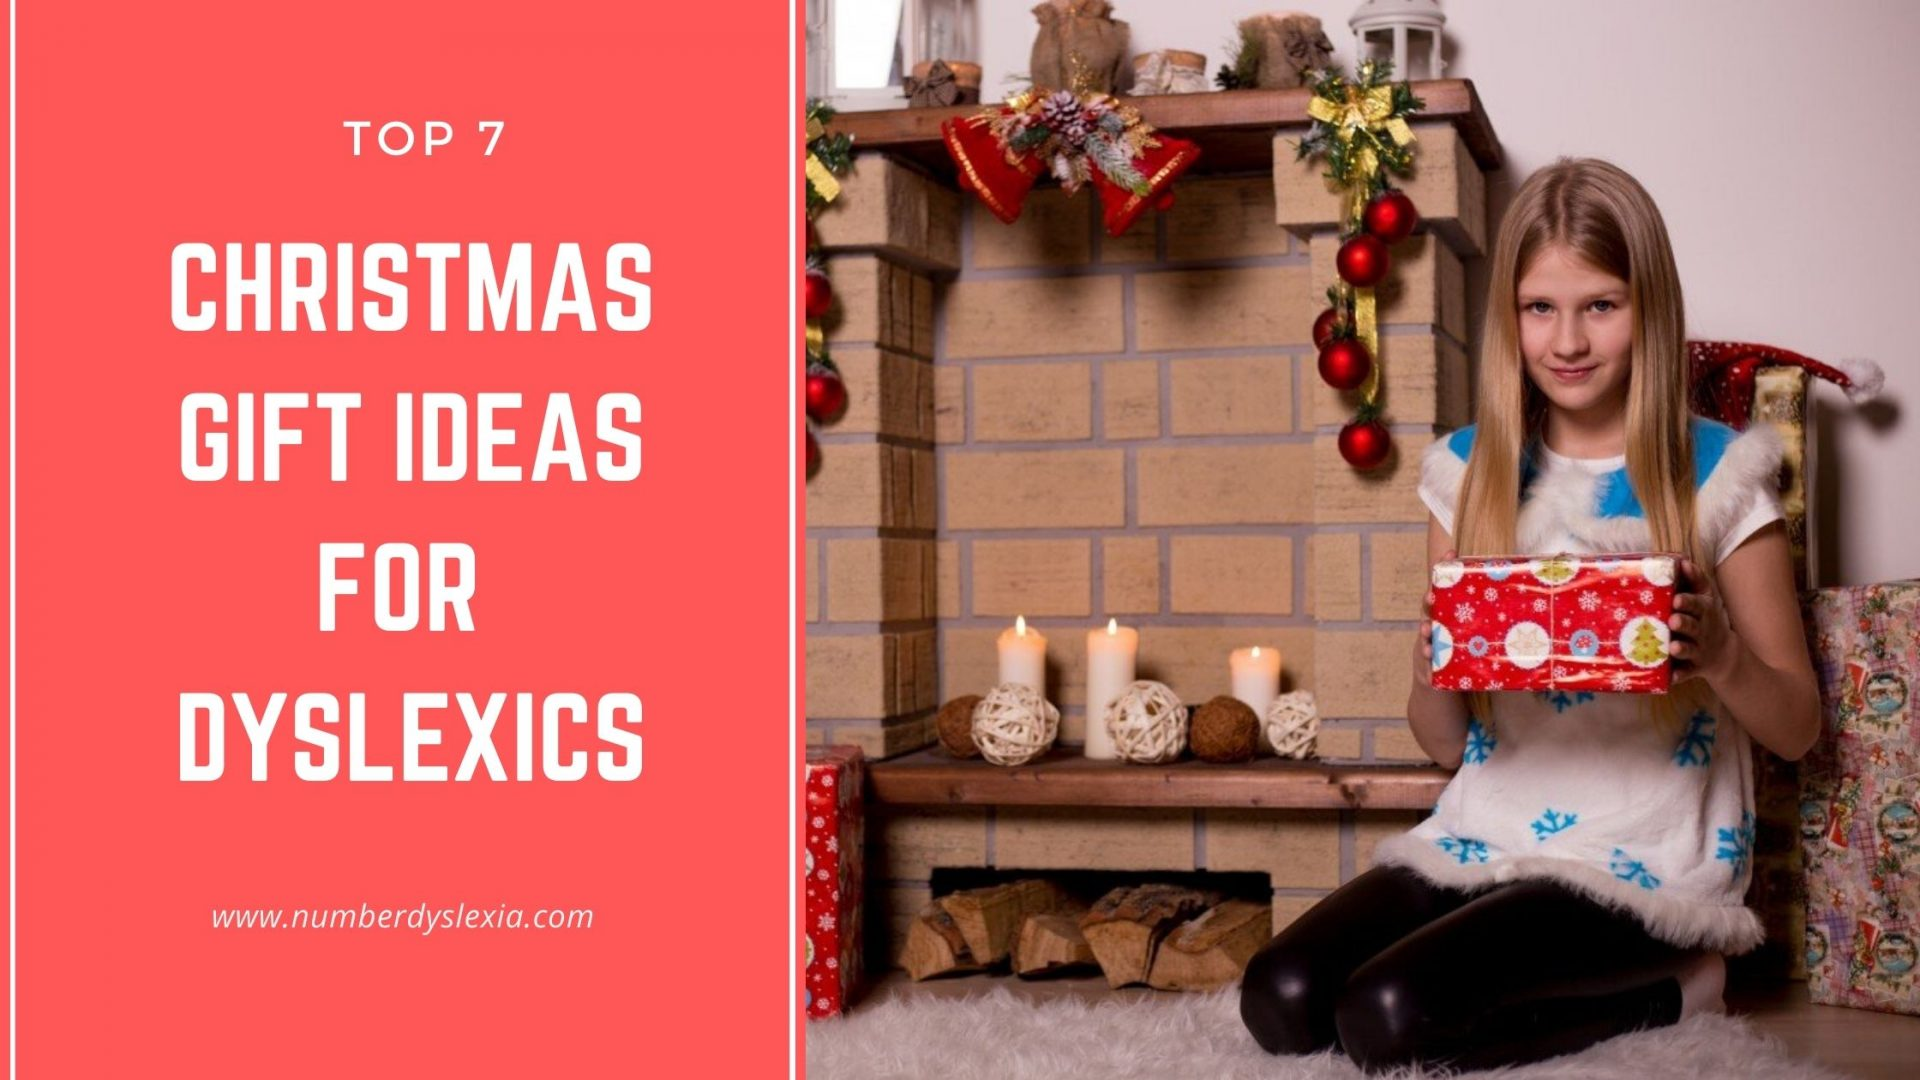 7 Awesome Christmas Gift Ideas for Dyslexics